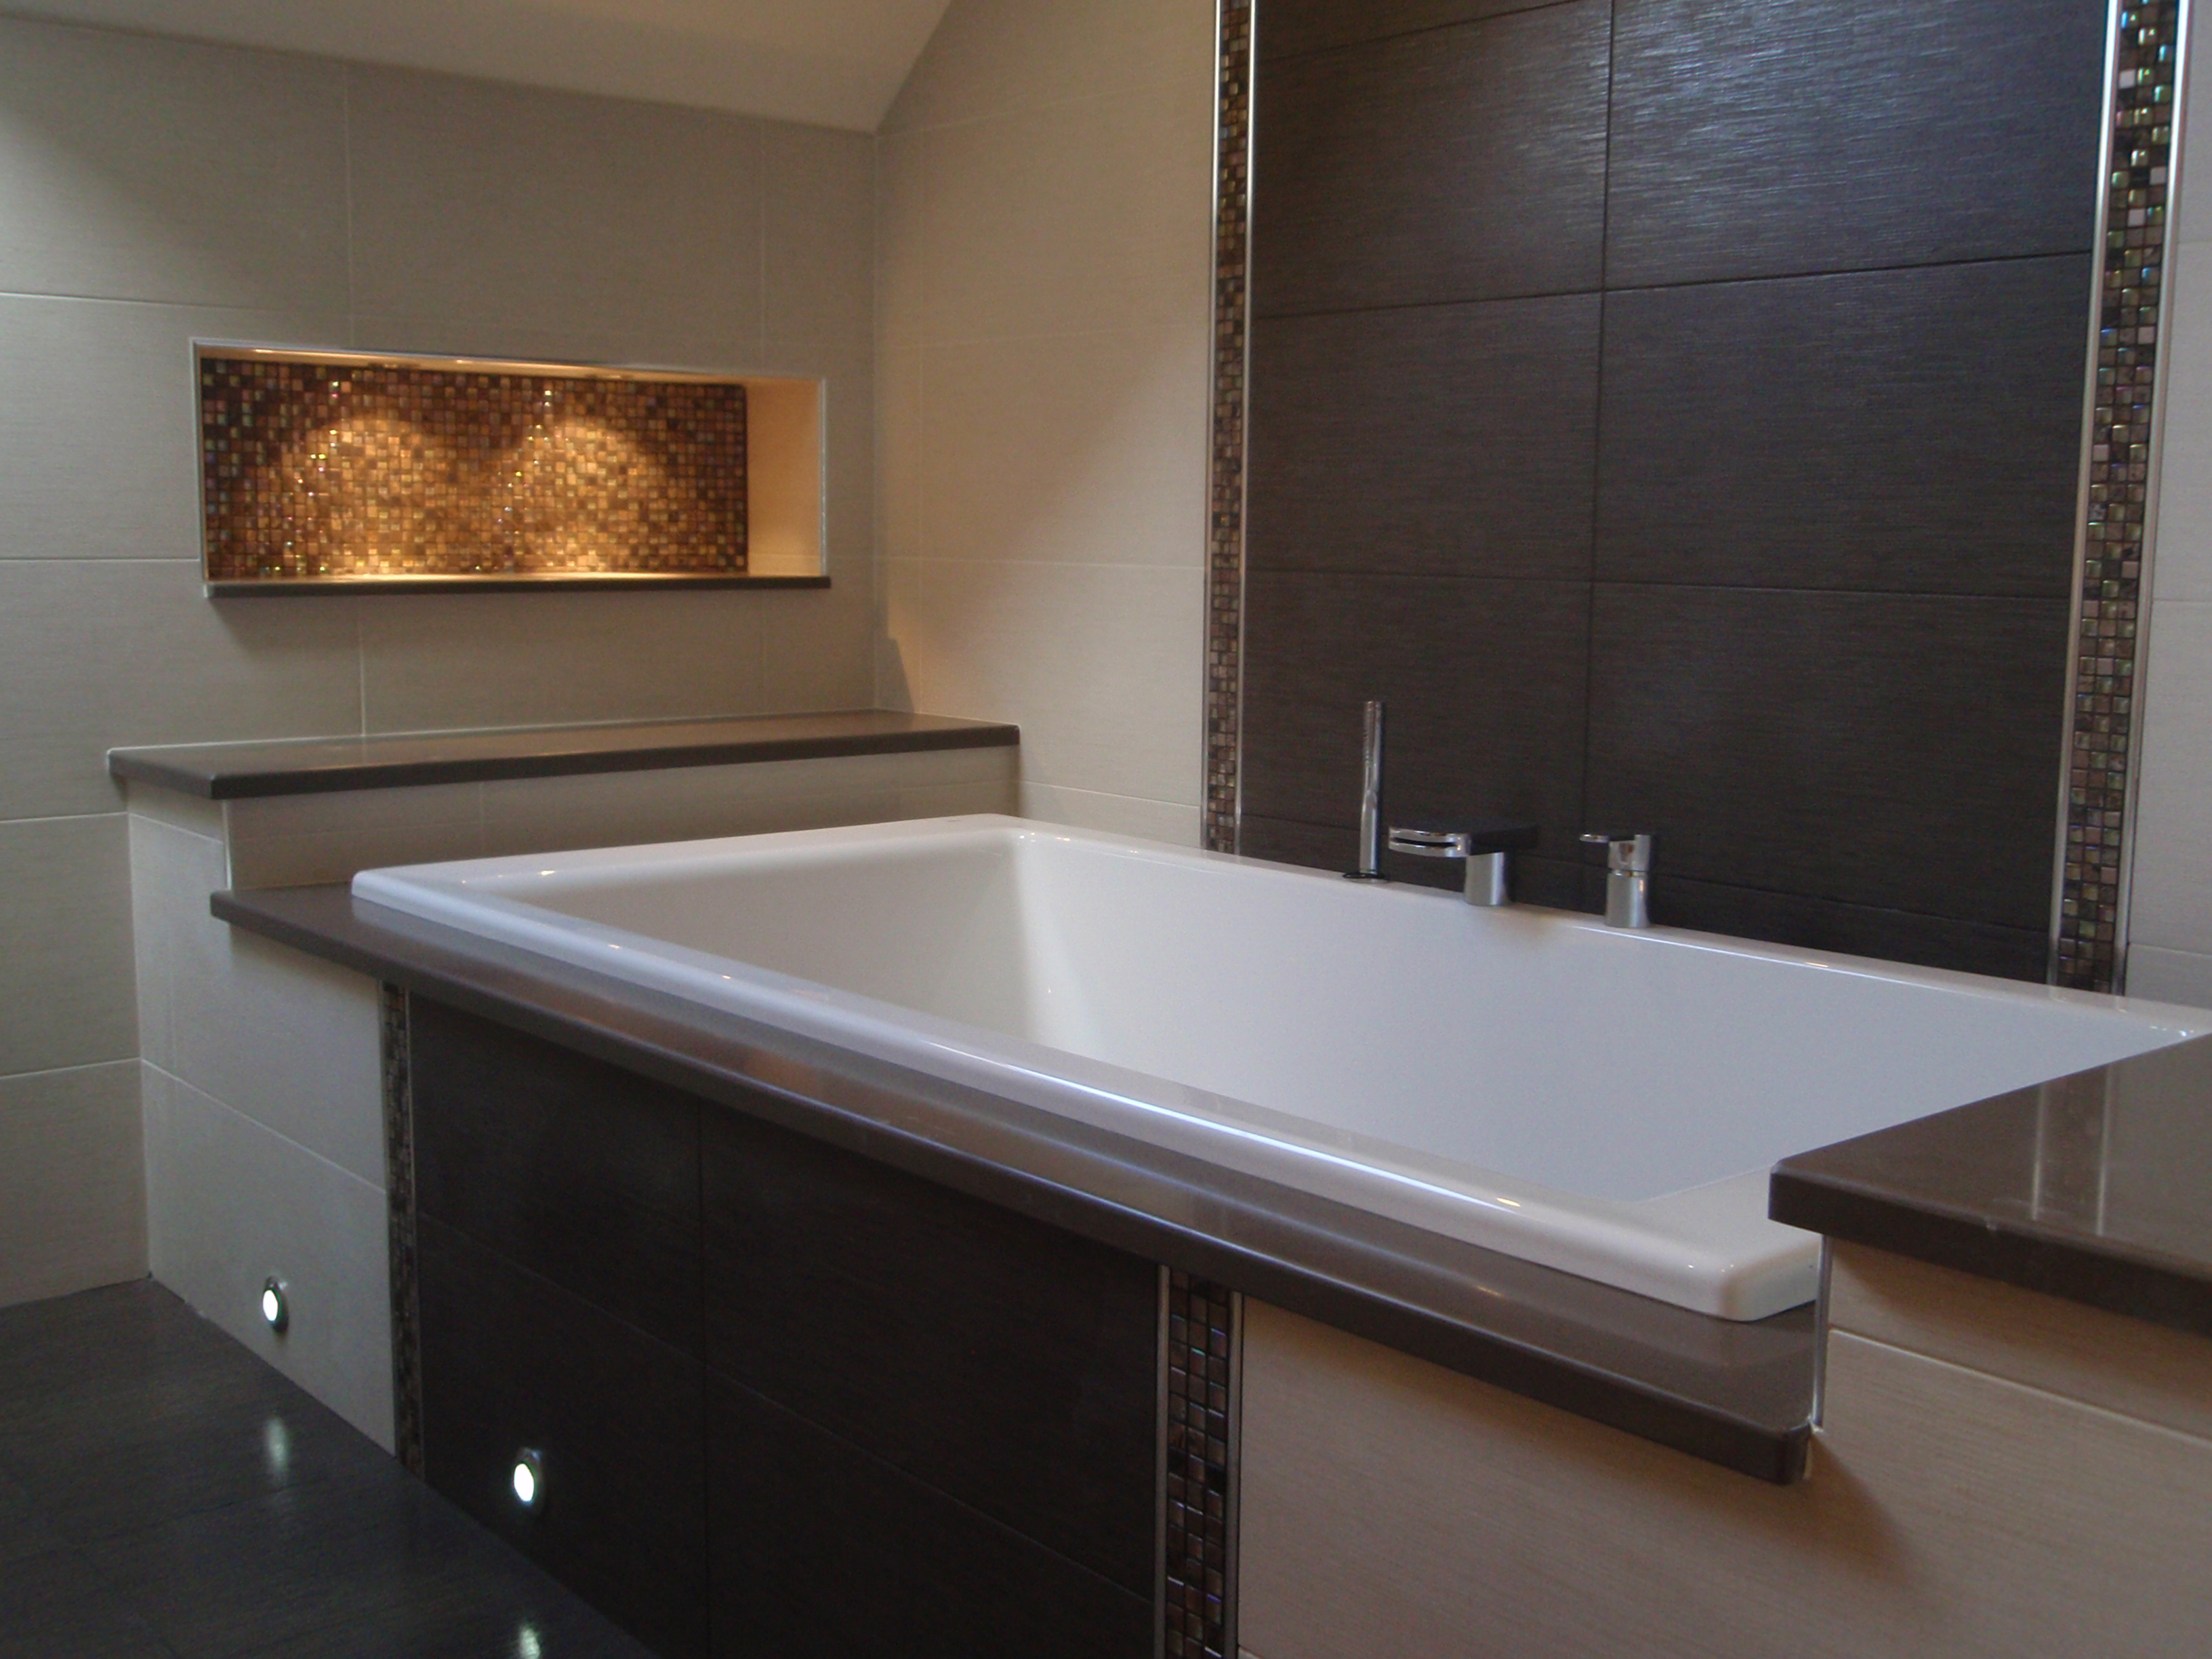 ... Takes The Stress Away And Letu0027s You Relax In The Knowledge That Your  Beautiful New Home Will Be Completed With Beautiful New Bathrooms To Match!